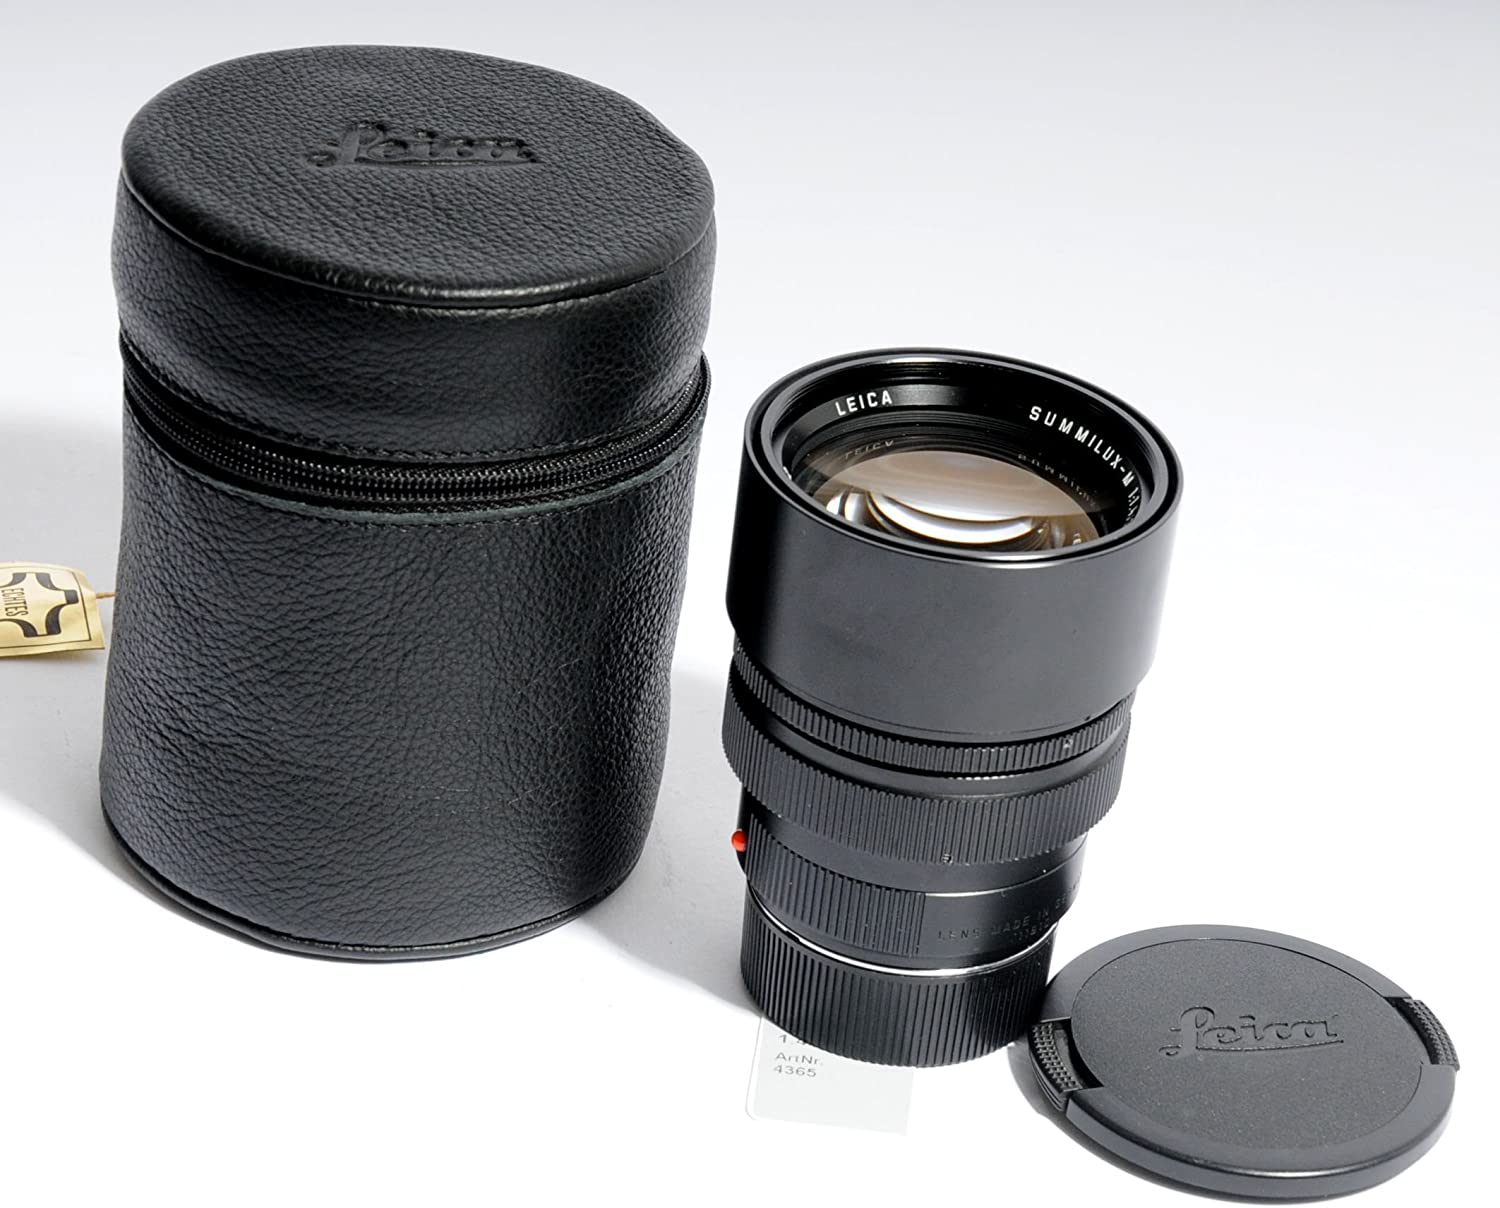 Gadget Place Black Vented Metal Lens Hood with Cap for Leica Summarit-M 35mm f//2.5